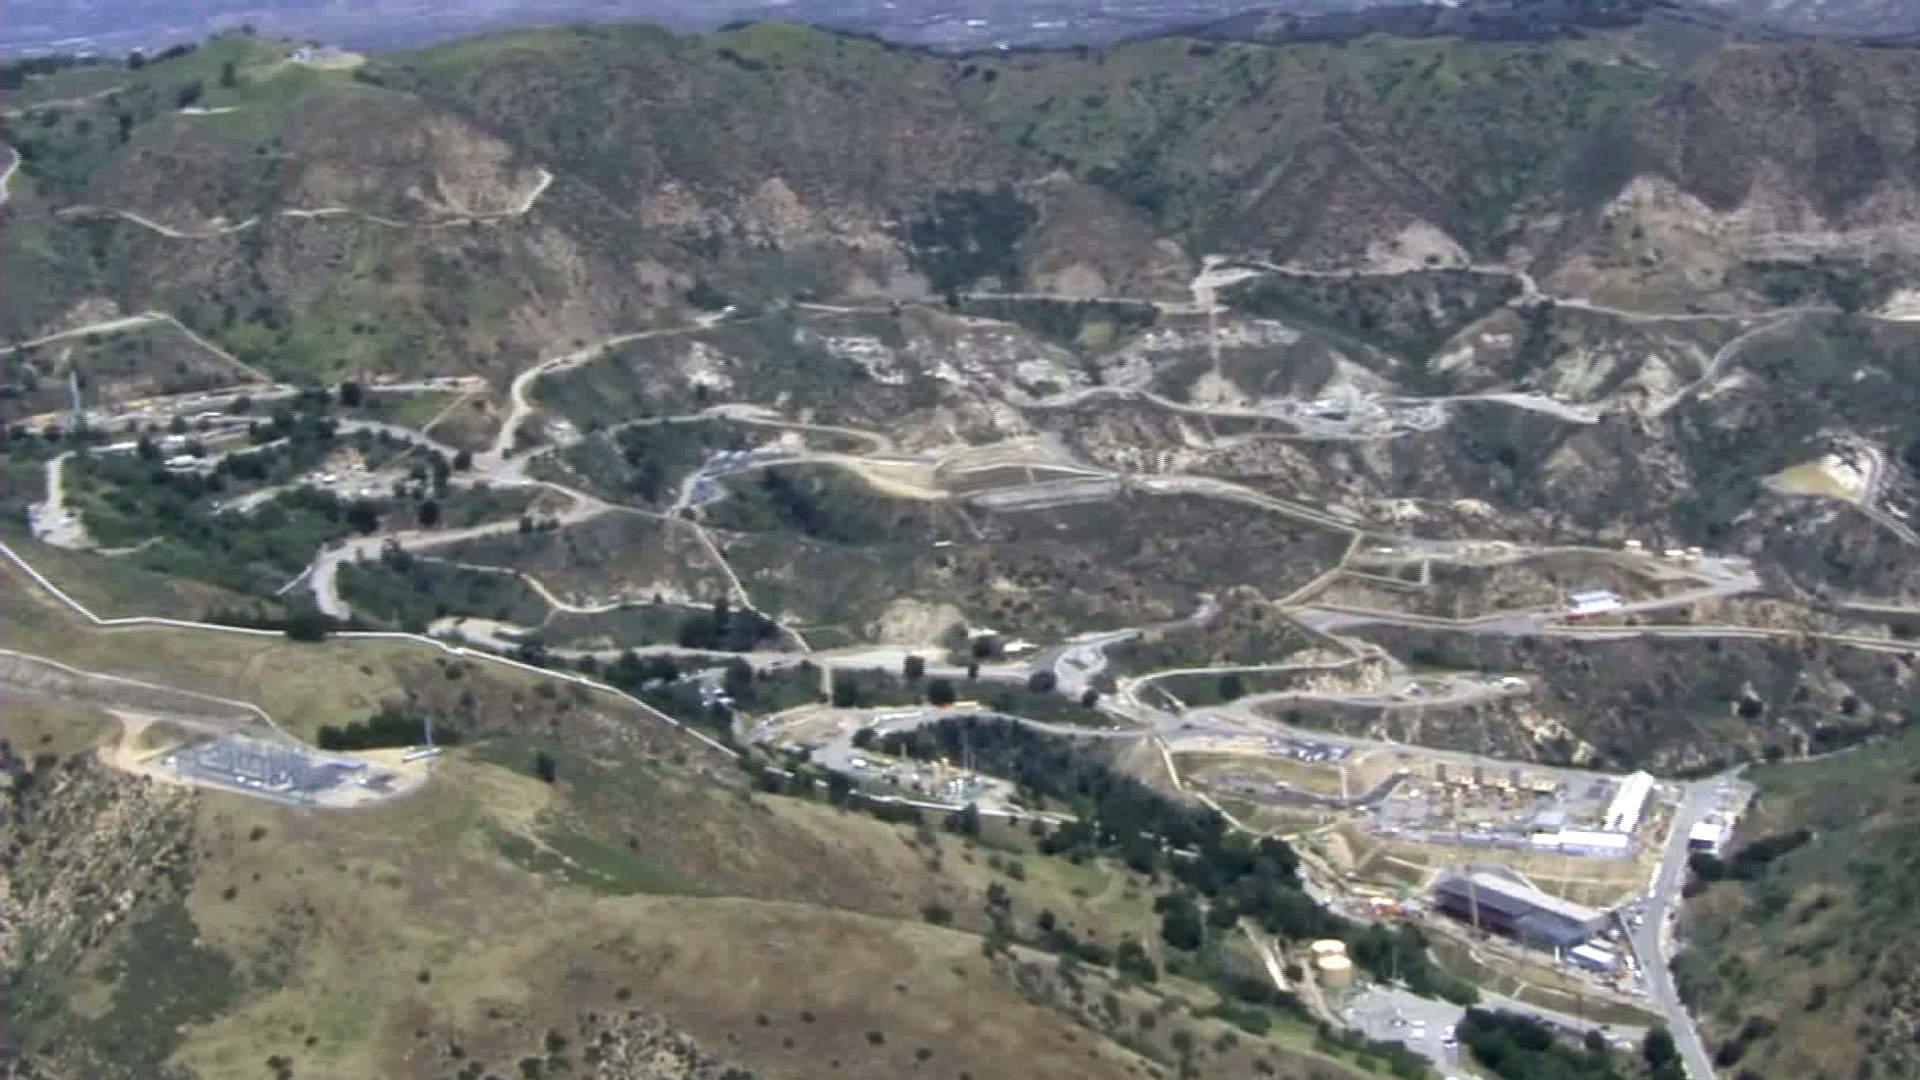 SoCal Gas' Aliso Canyon natural gas field is shown in a general view from Sky5 on April 18, 2016. (Credit: KTLA)